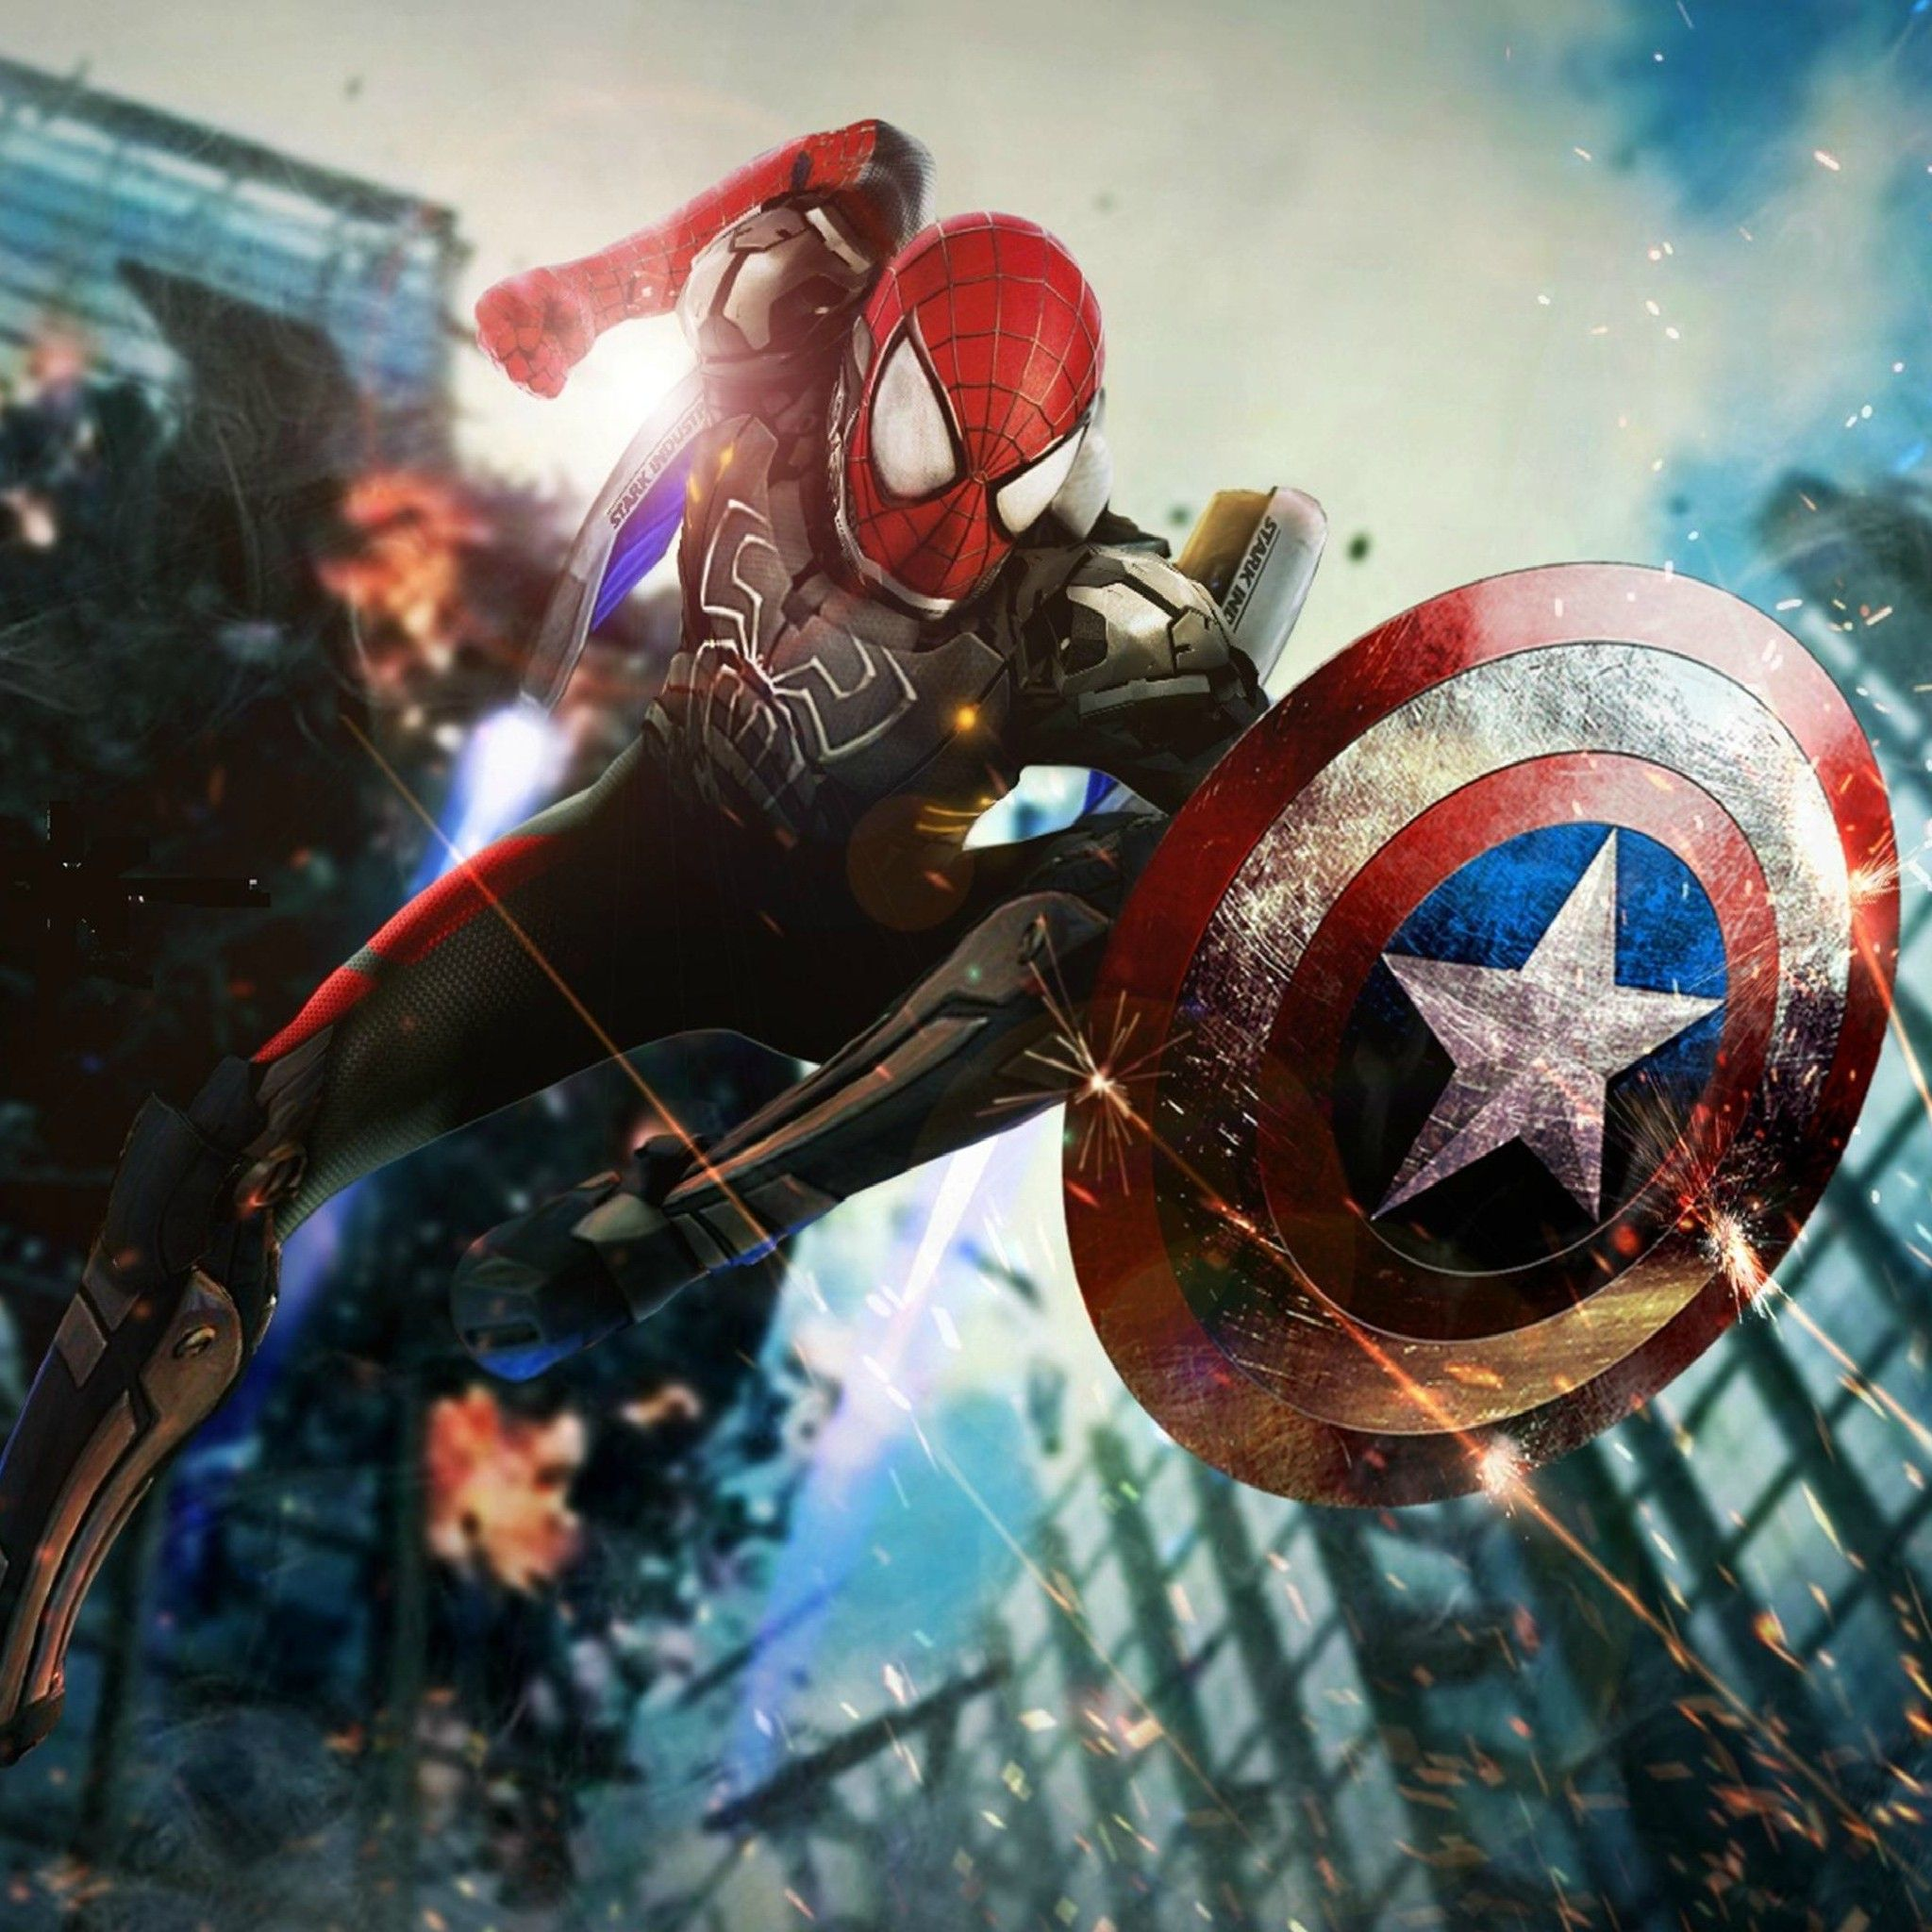 Iron spider man wallpapers top free iron spider man - Iron man spiderman wallpaper ...